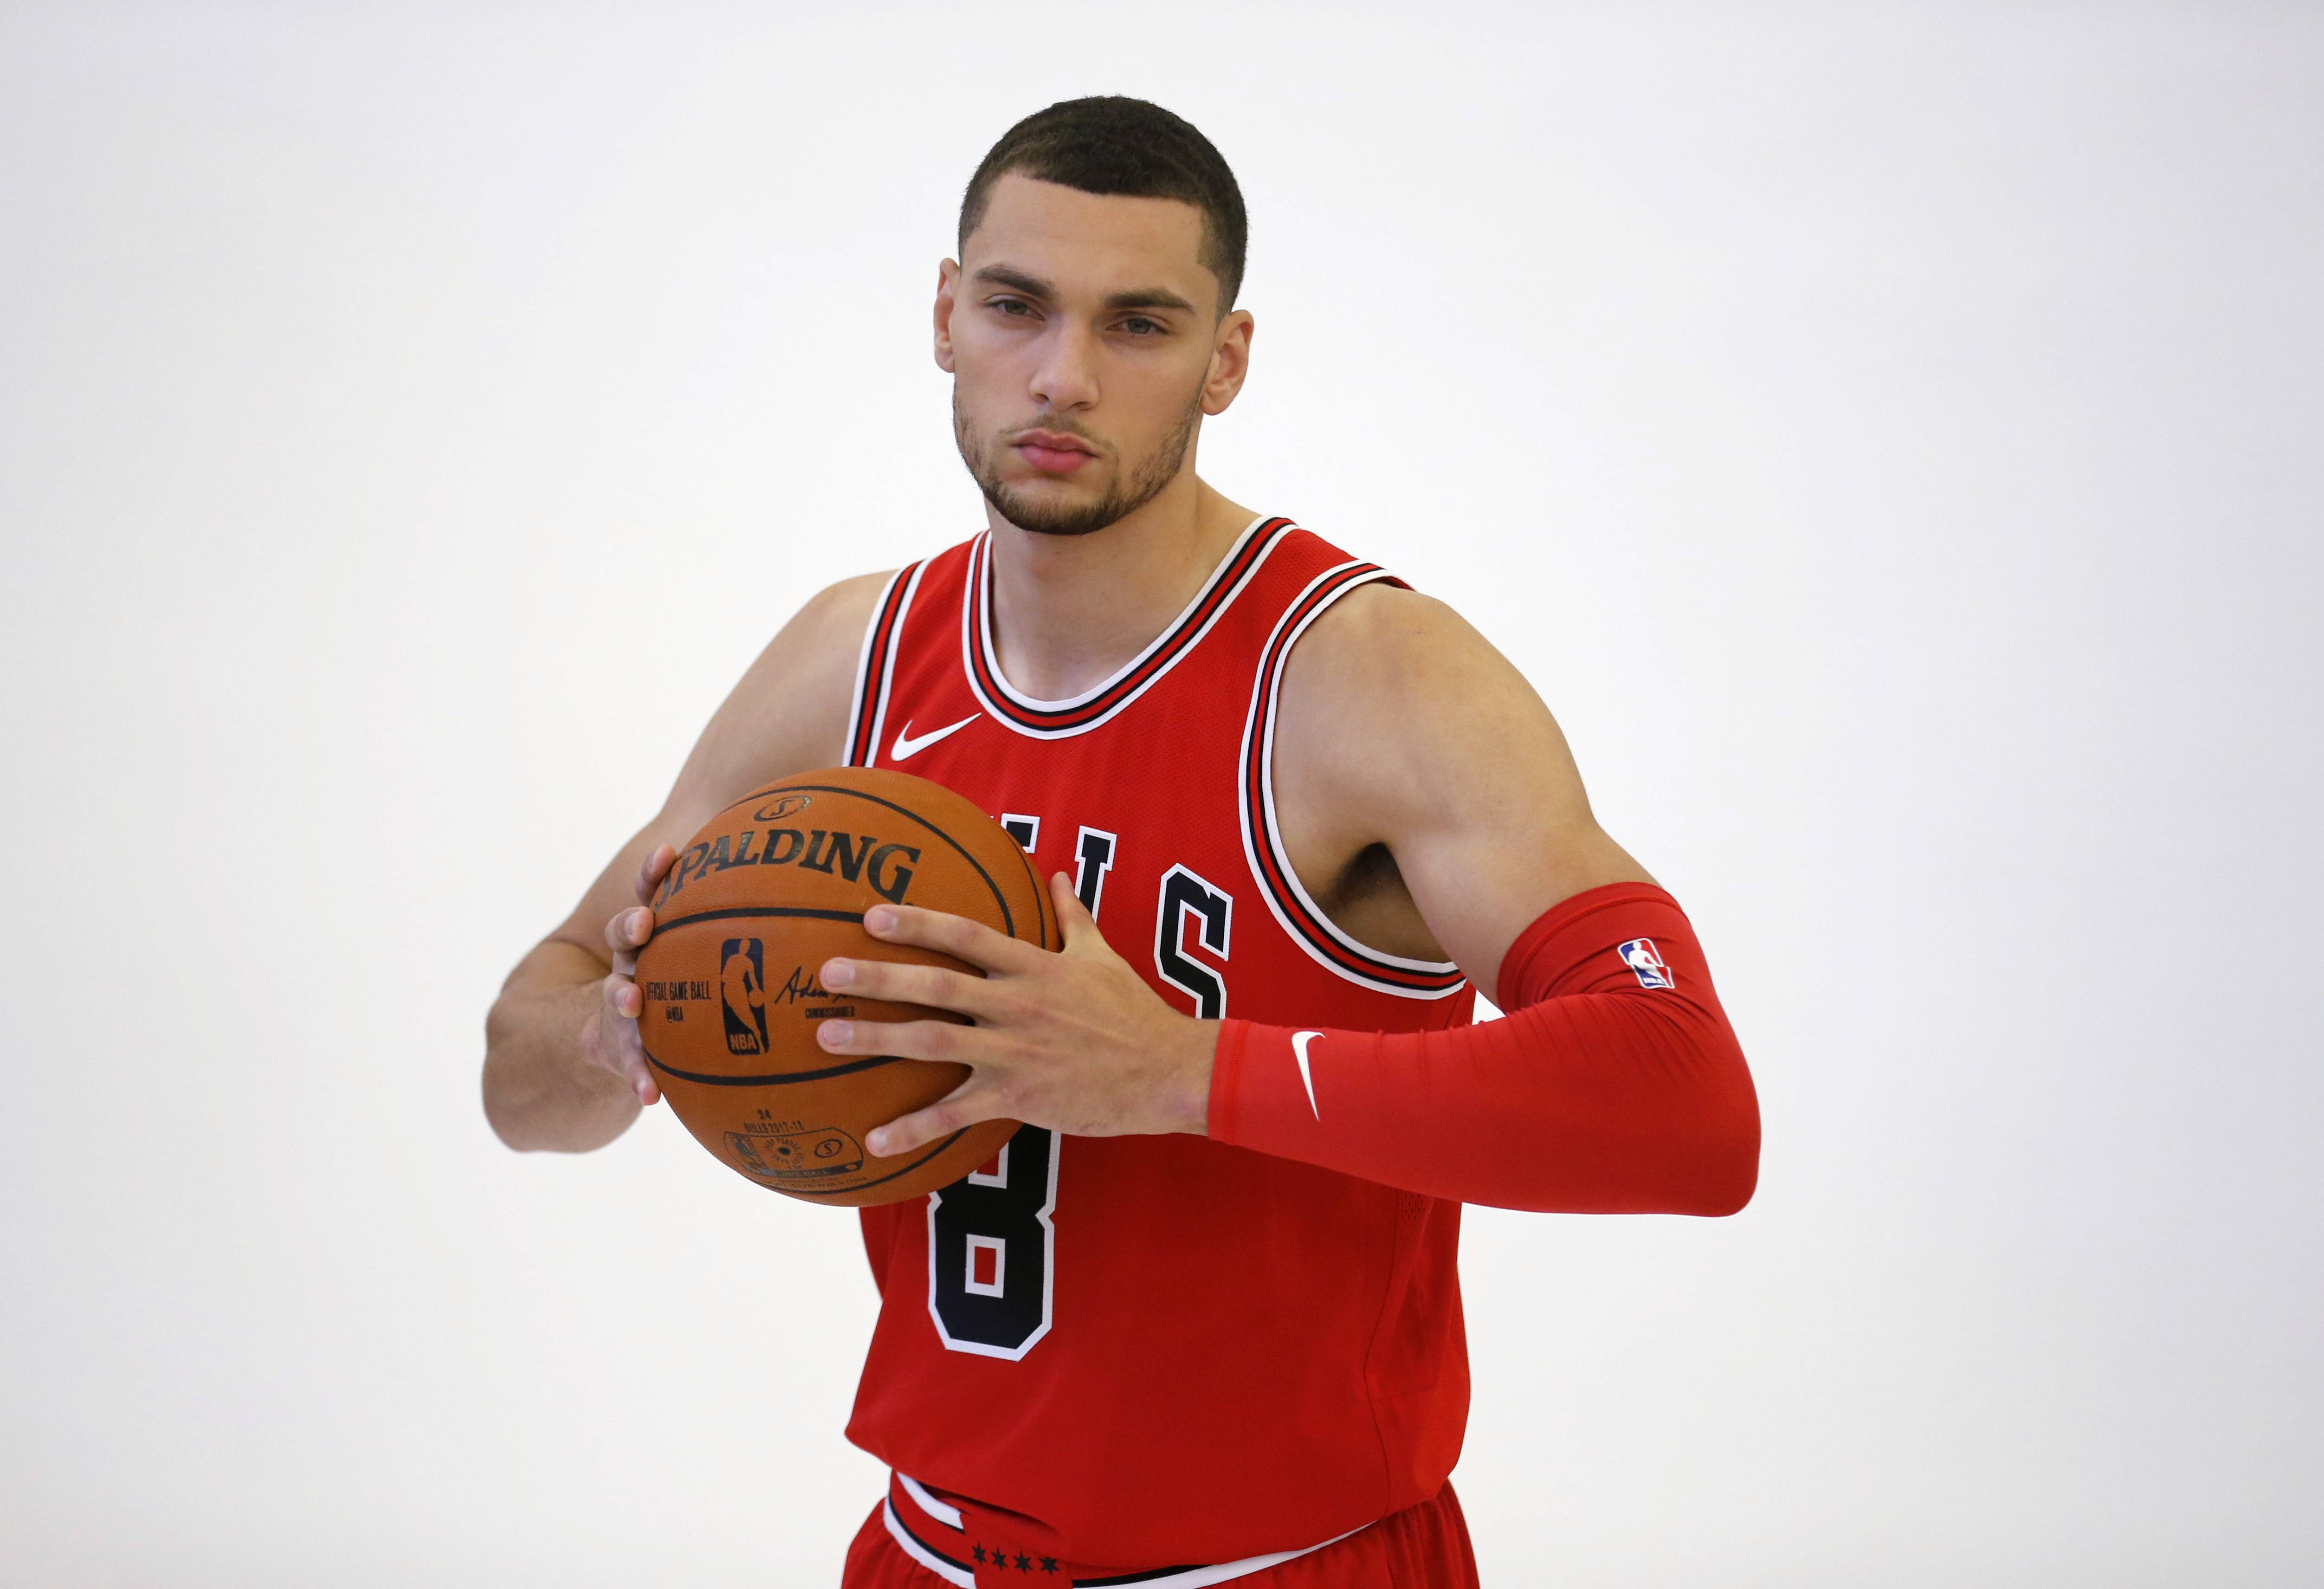 Chicago Bulls' Zach LaVine poses for a portrait during media day for the NBA basketball team Monday, Sept. 25, 2017, in Chicago. (AP Photo/Charles Rex Arbogast)